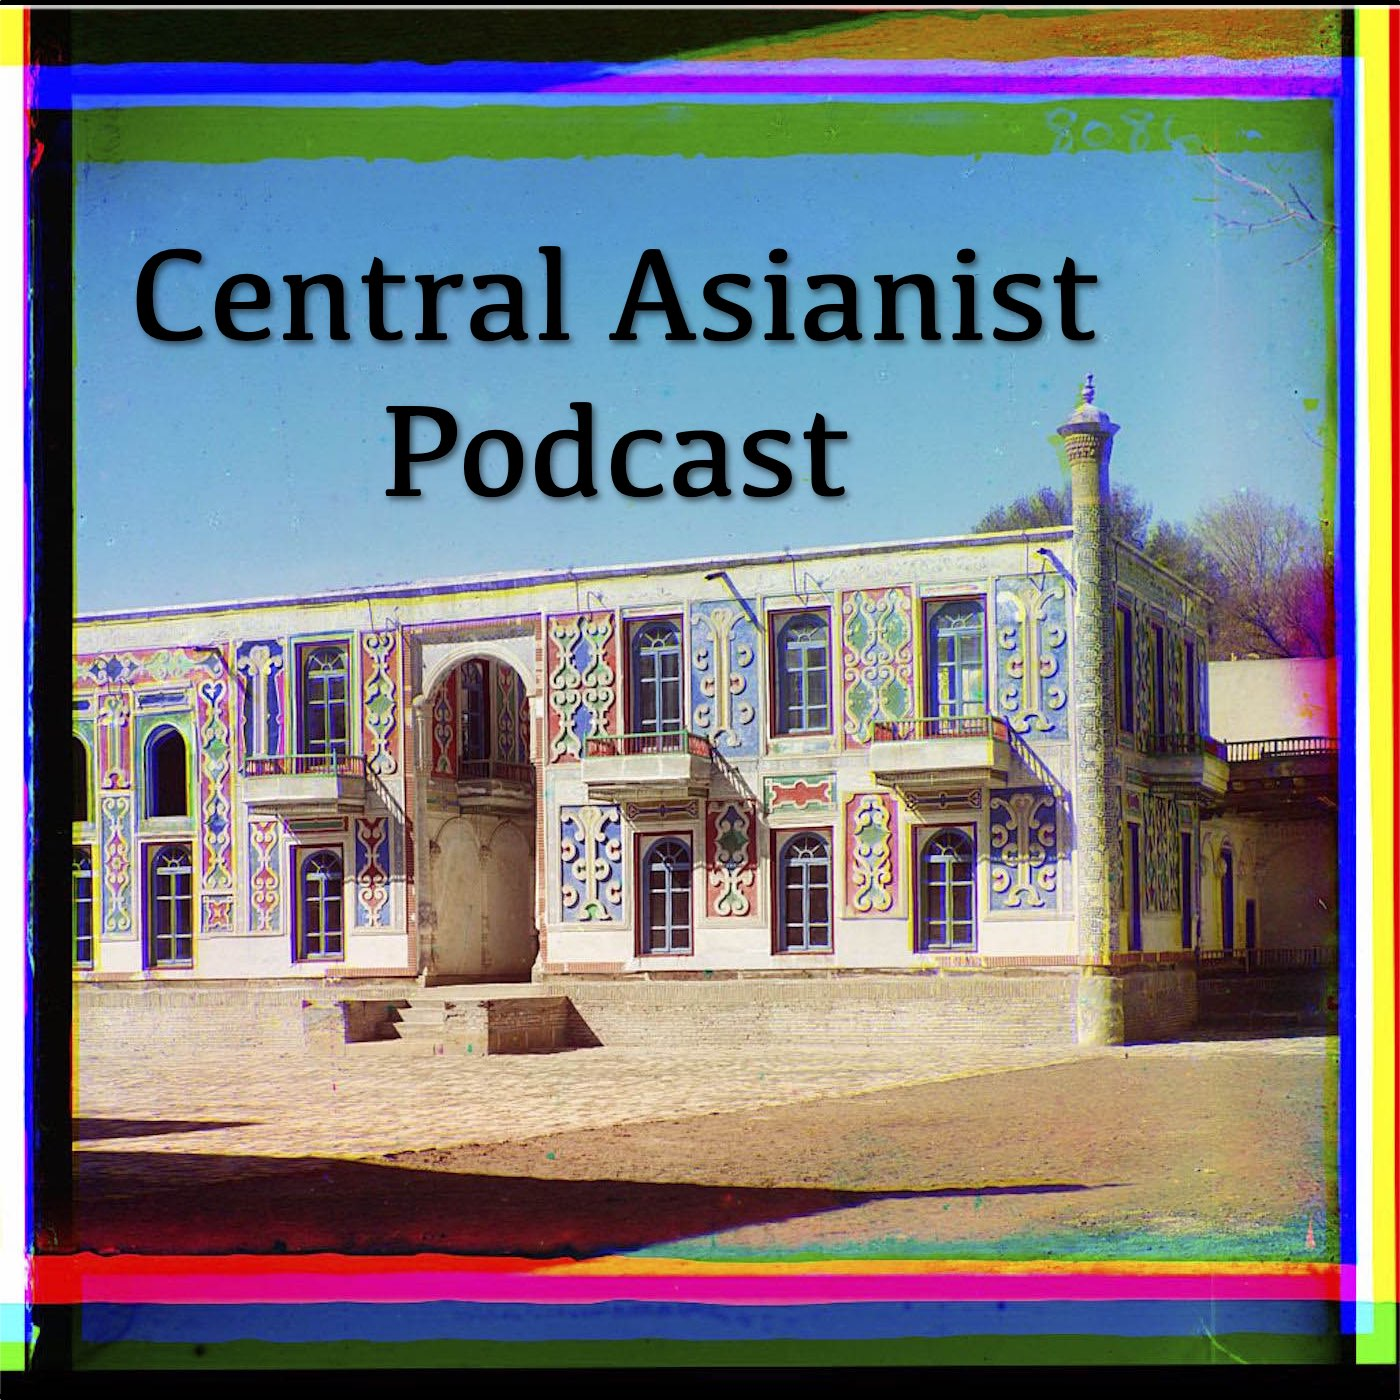 The Central Asianist Podcast show art